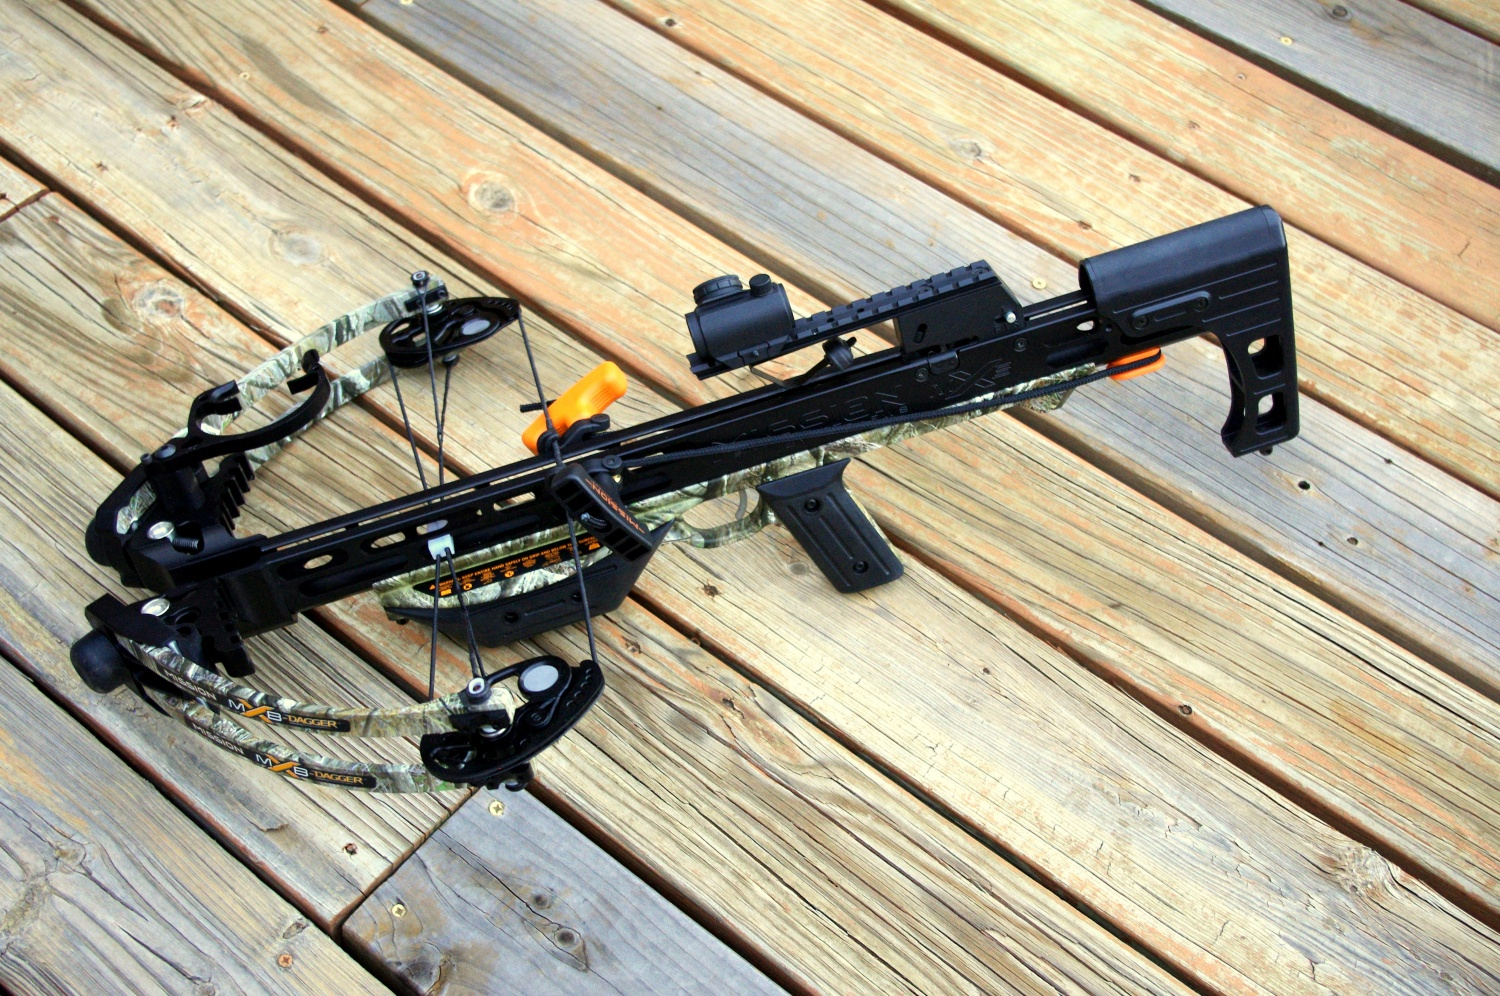 Mission MXB Dagger crossbow with Bushnell TRS-25